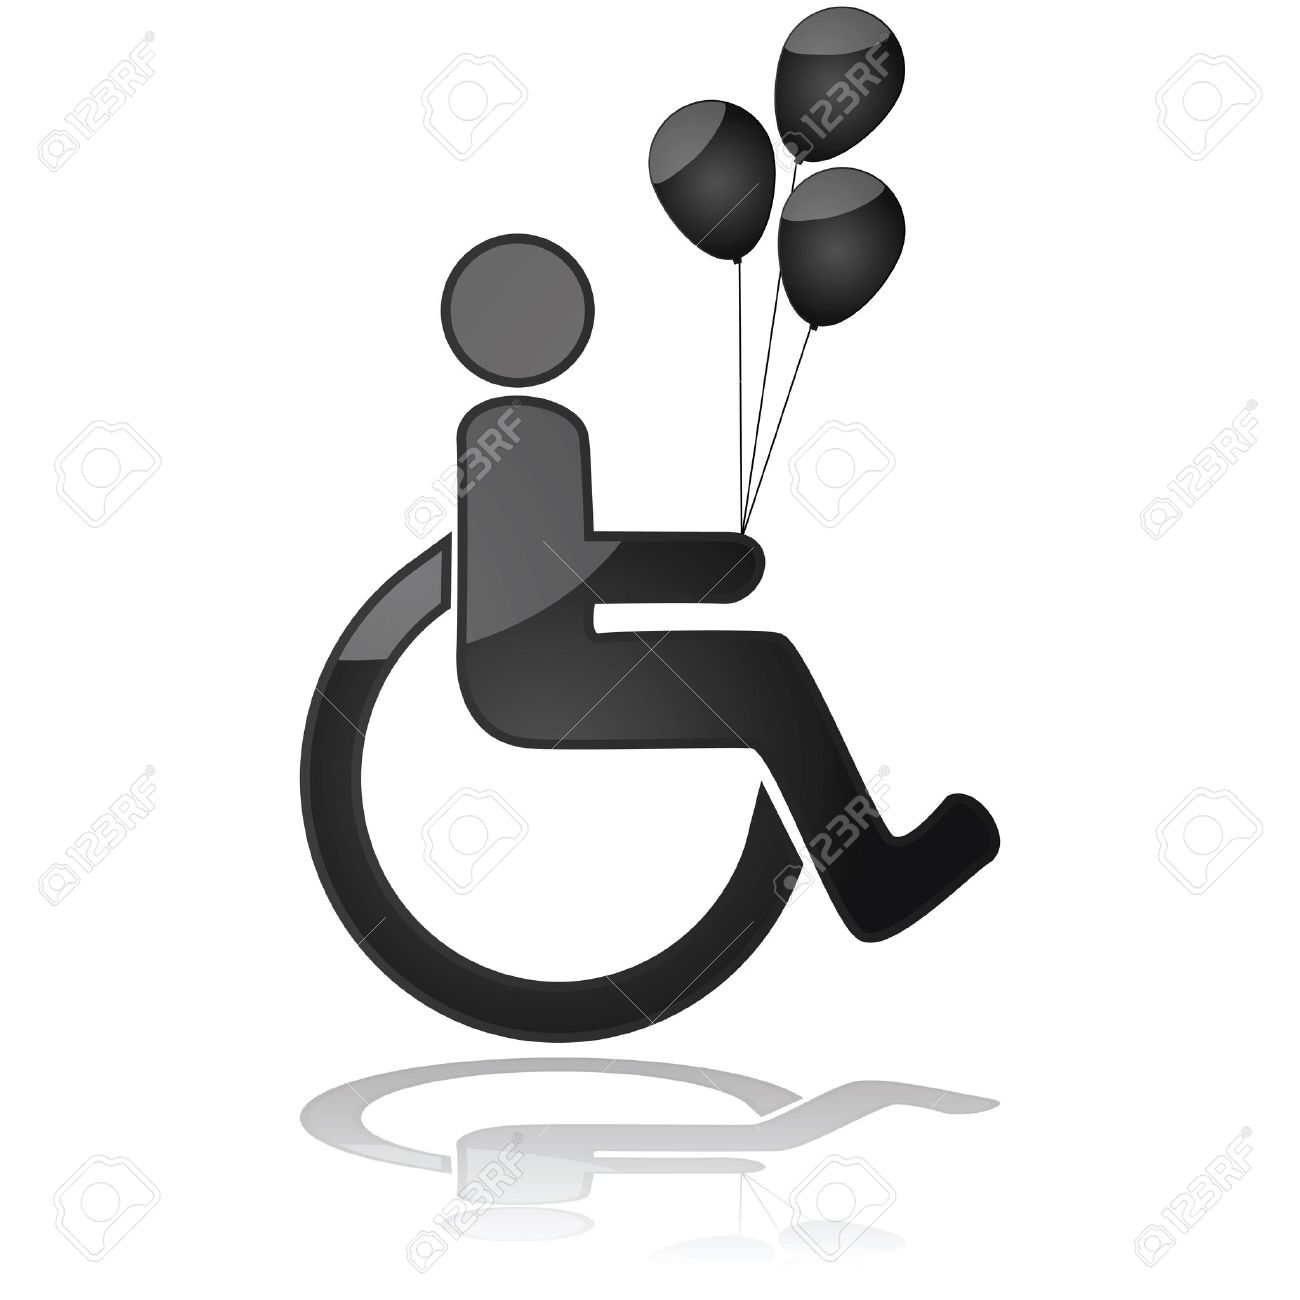 Icon illustration showing a child in a wheelchair holding balloons Stock Vector - 16936788